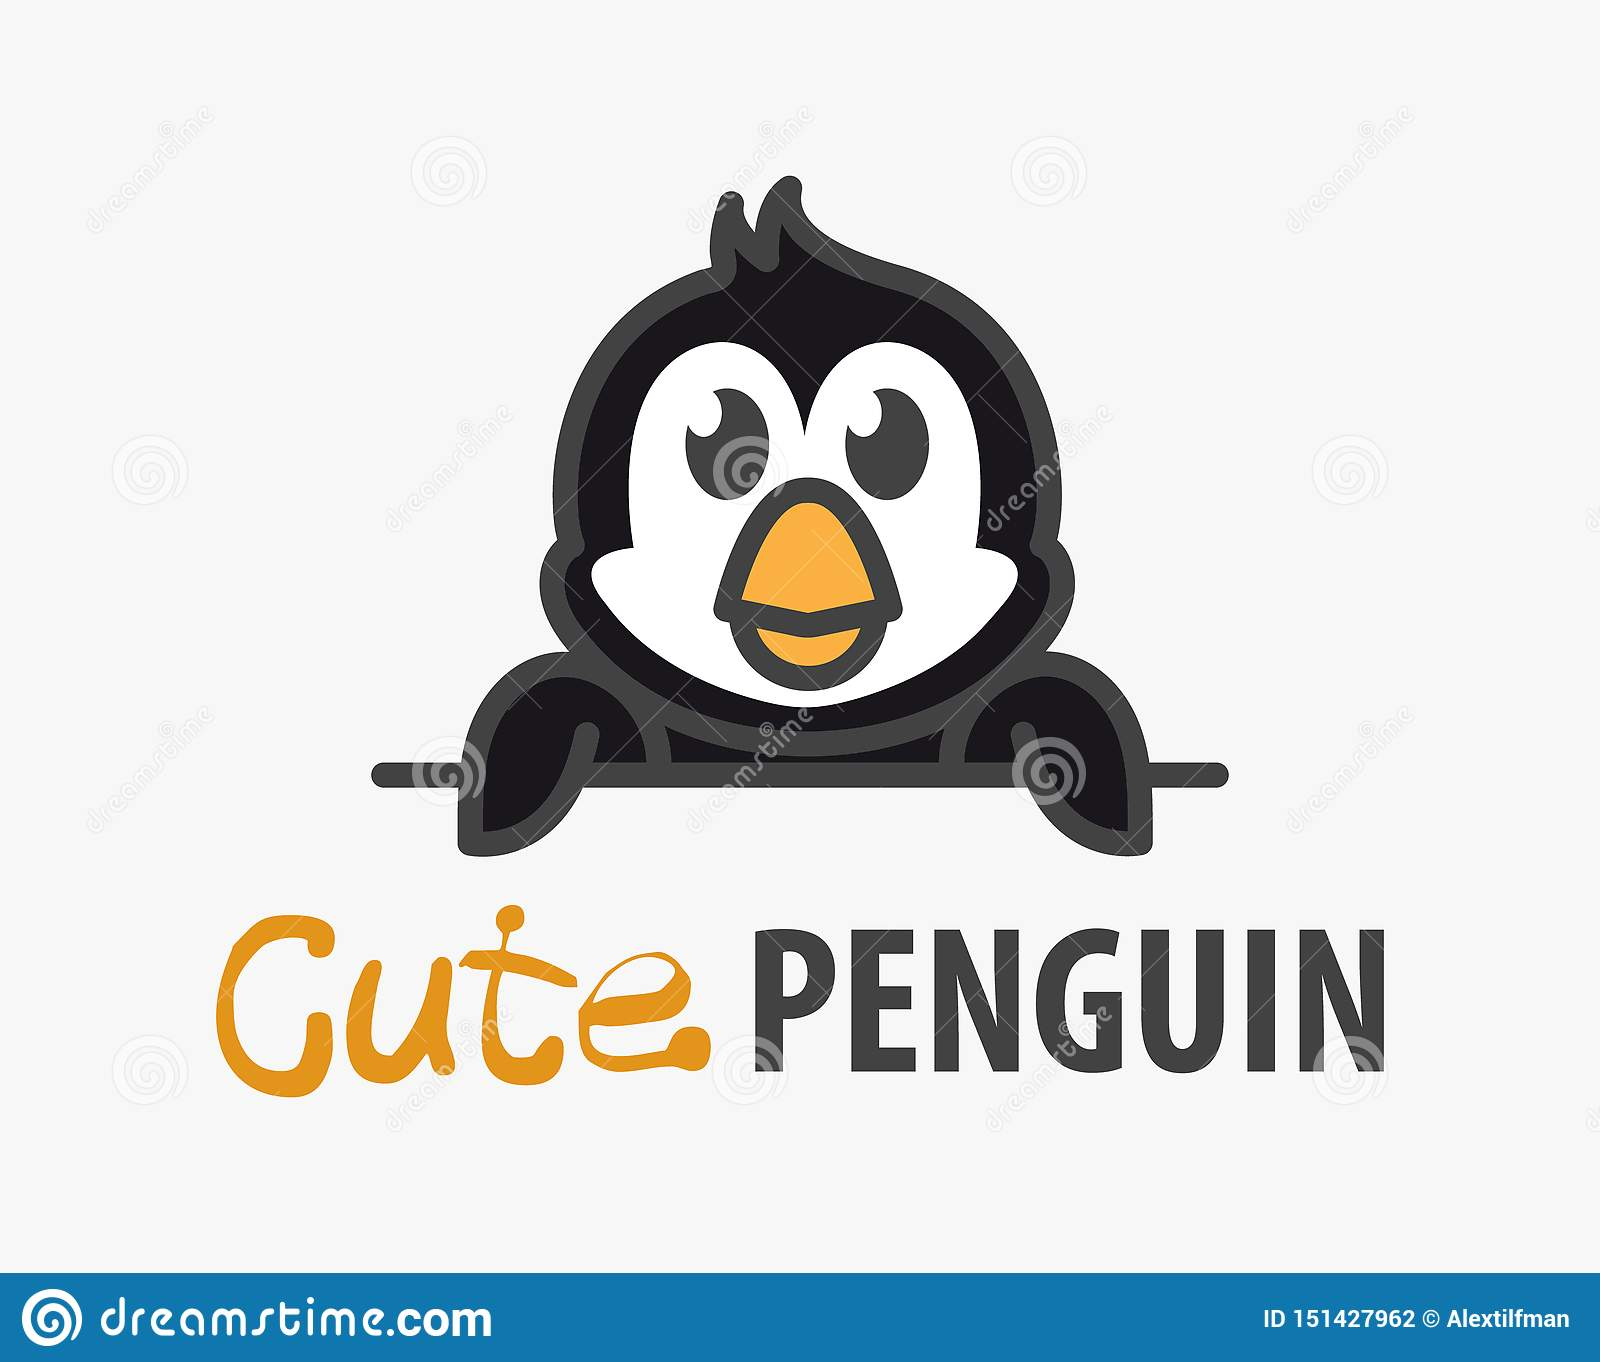 Logo template with cute penguin. Vector logo design template for zoo, veterinary clinics, ice cream shop. Cartoon Antarctic animal